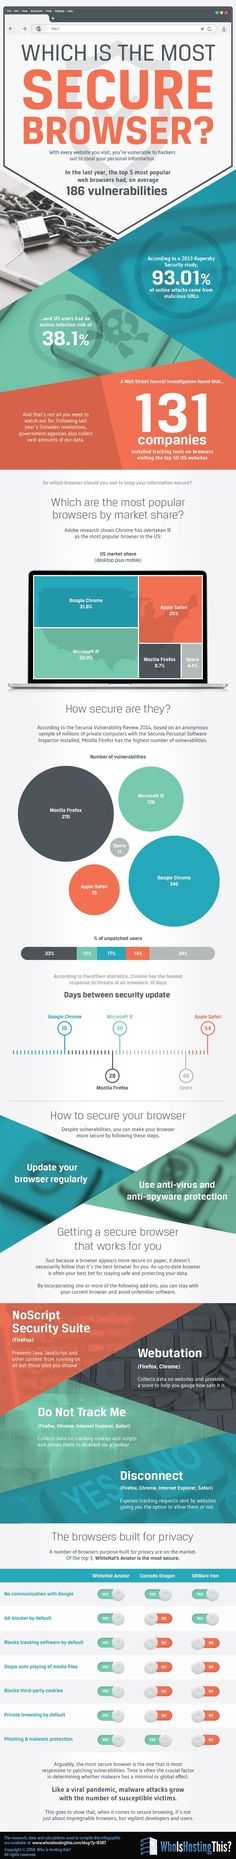 Infographic: Which is the Most Secure Browser: With every website you visit, you're vulnerable to hackers out to steal your personal information. In the last year, the top 5 most popular web browsers had, on average 186 vulnerabilities.